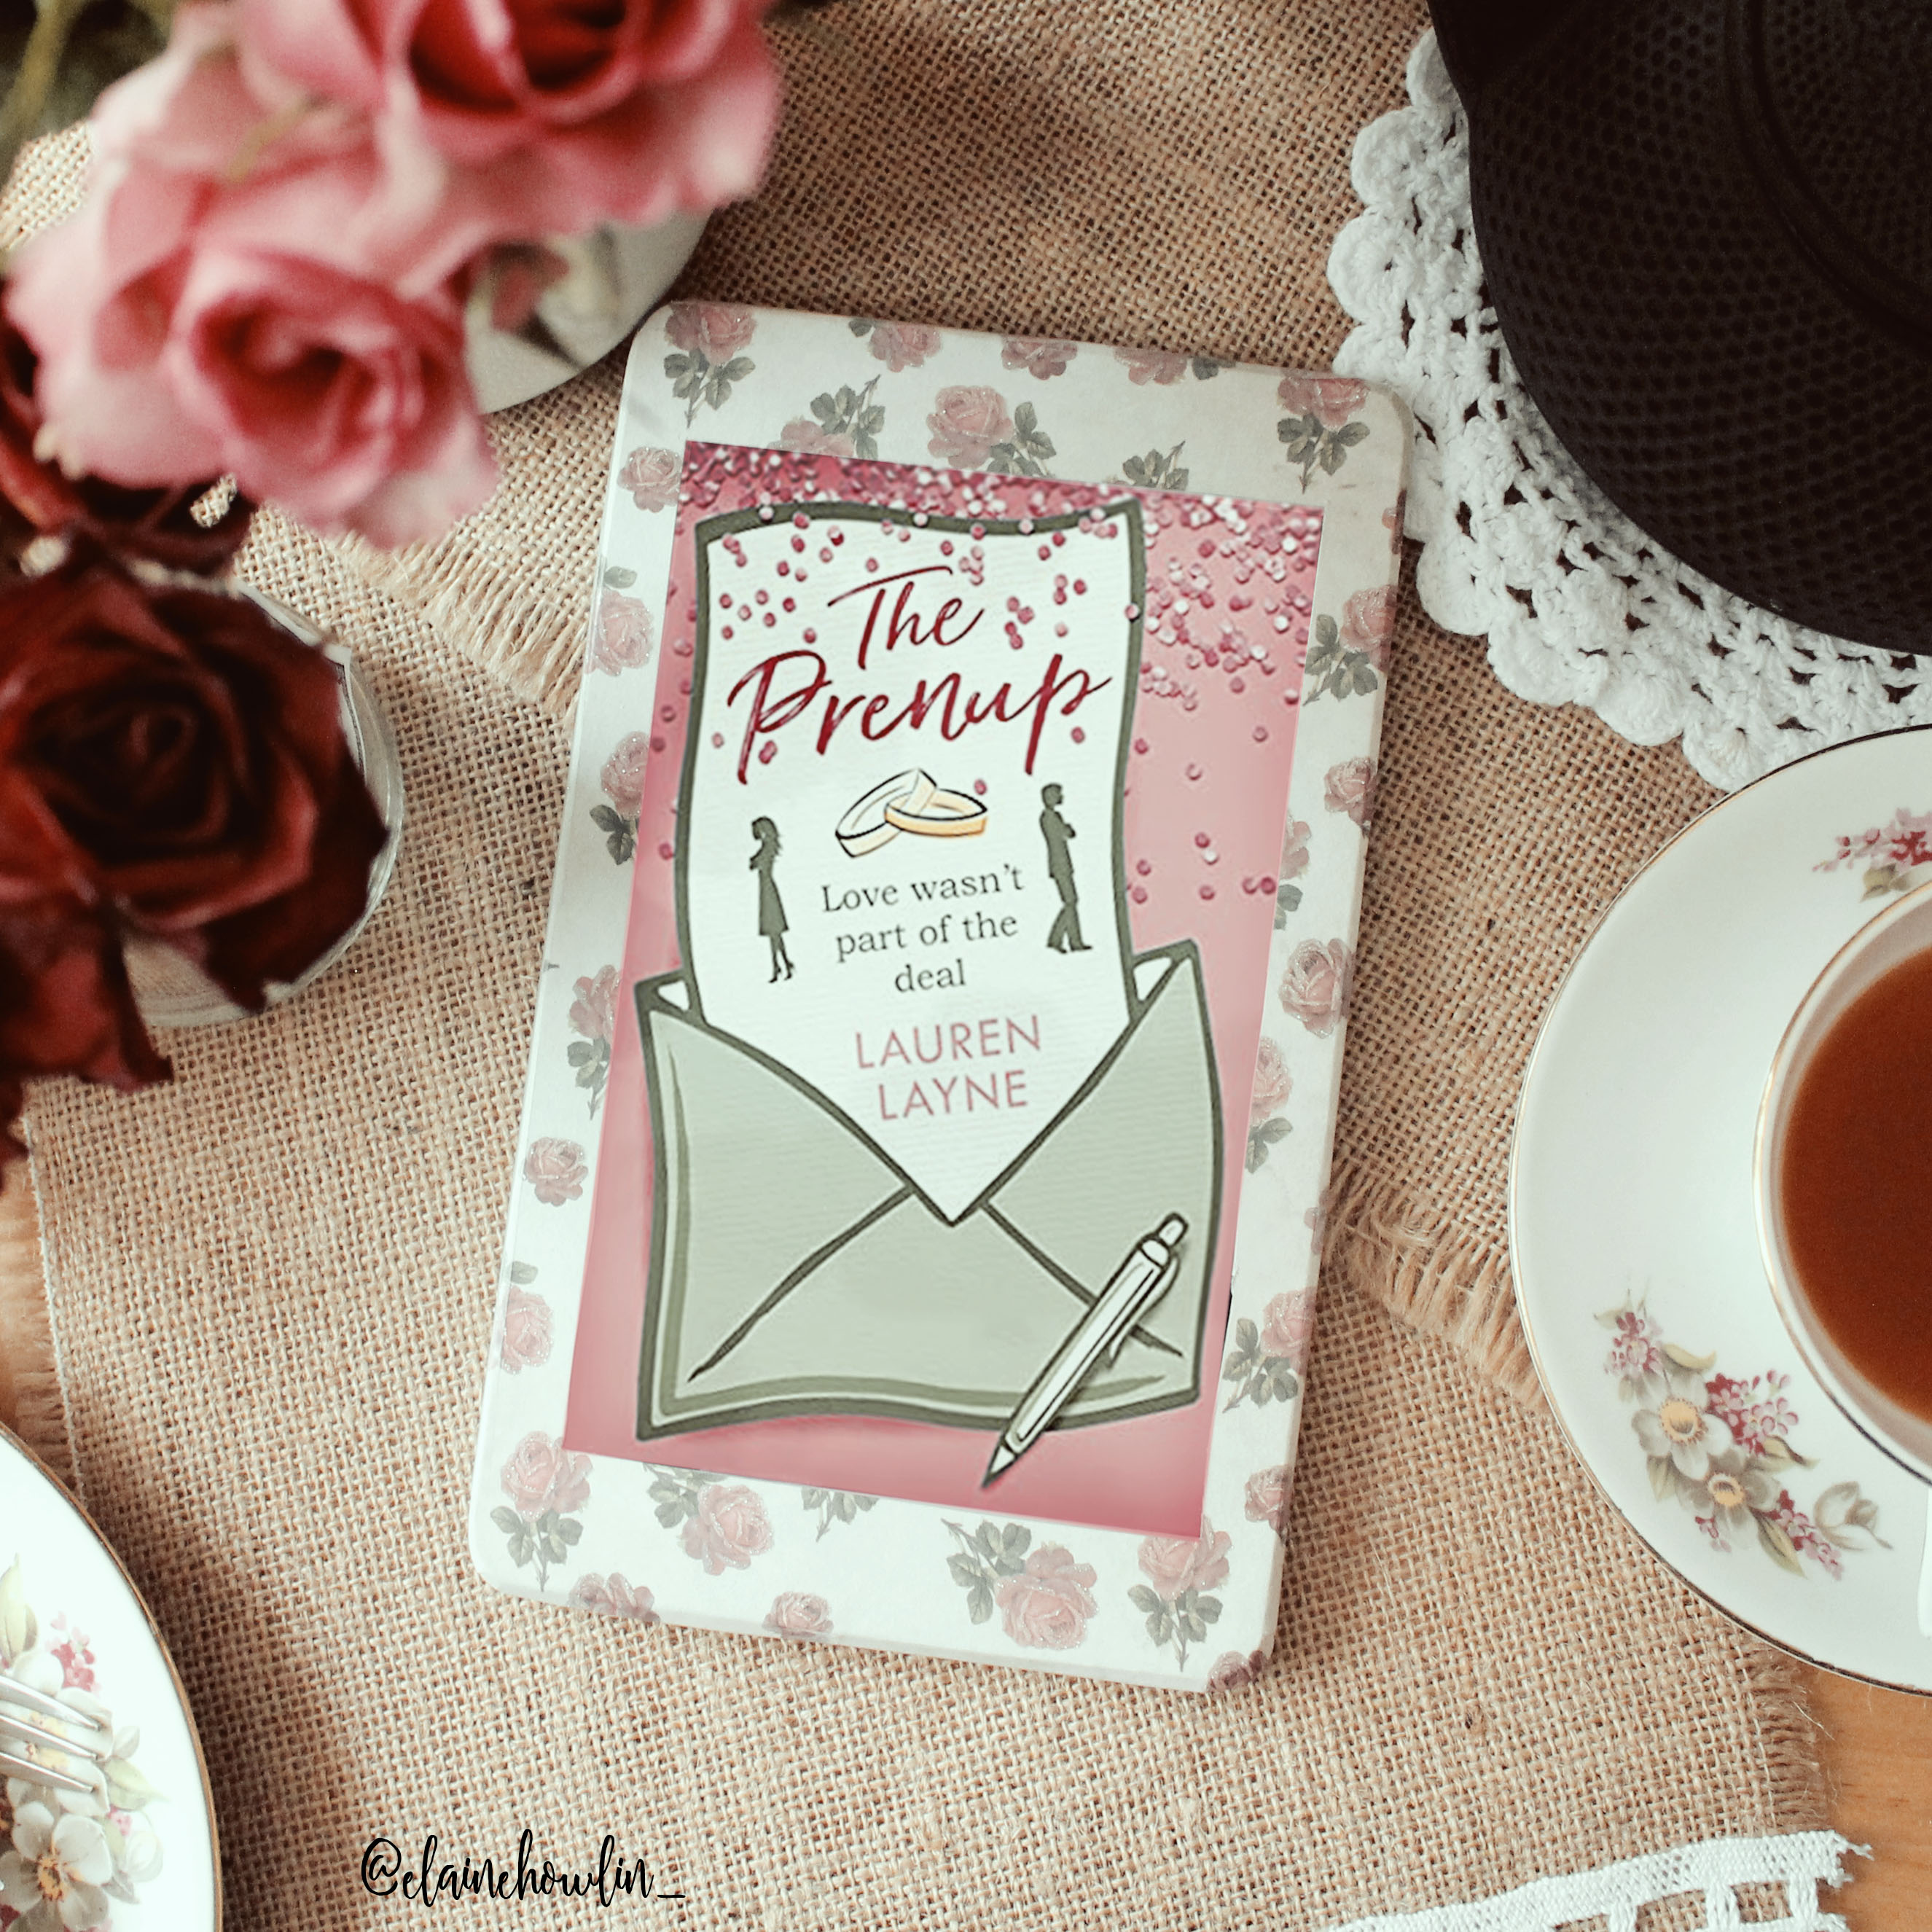 The Prenup by Lauren Layne Elaine Howlin Bookstagram